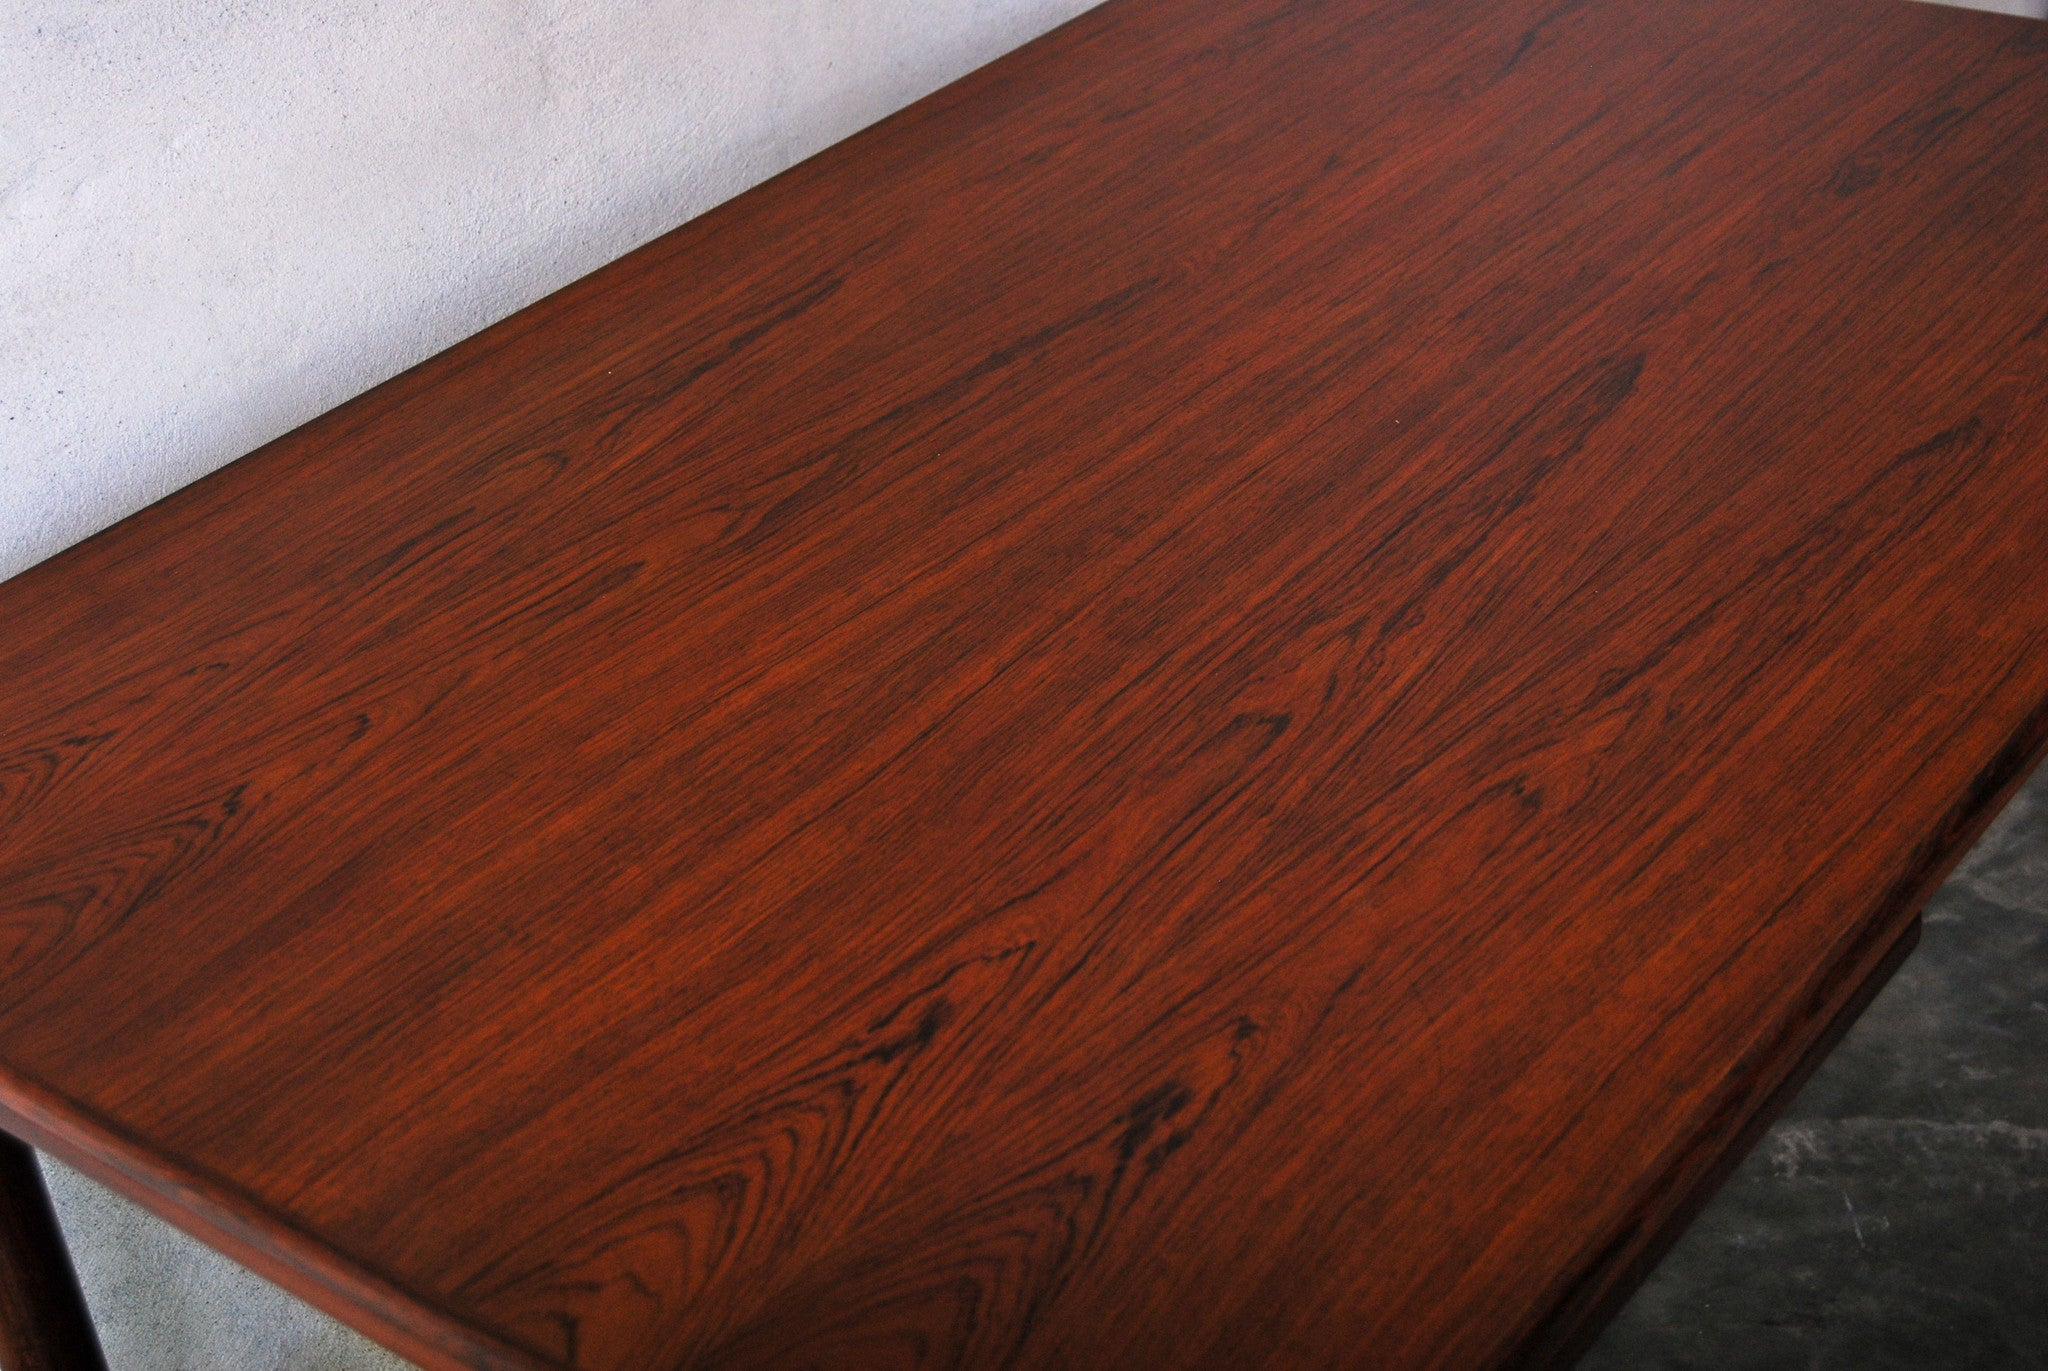 Rectangular dining table in rosewood